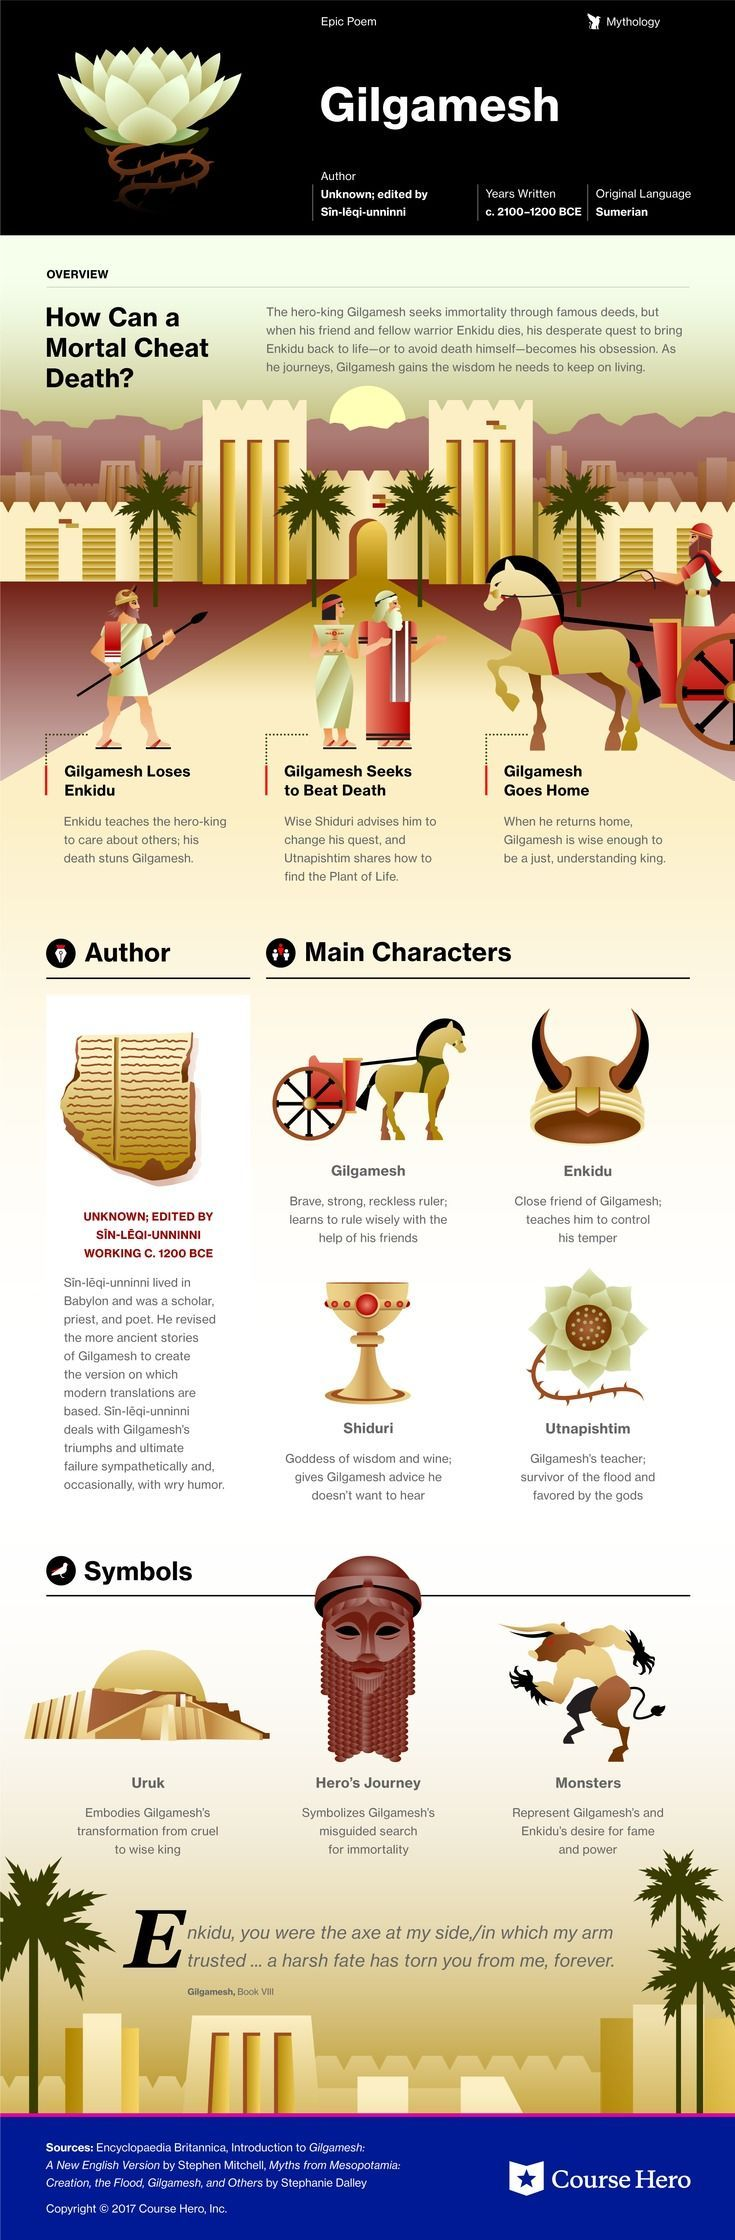 447 best infographic stories images on pinterest beds classic barn burning symbolism essay examples looking for free barn burning and symbolism essays with examples over 4 full length free essays book reports buycottarizona